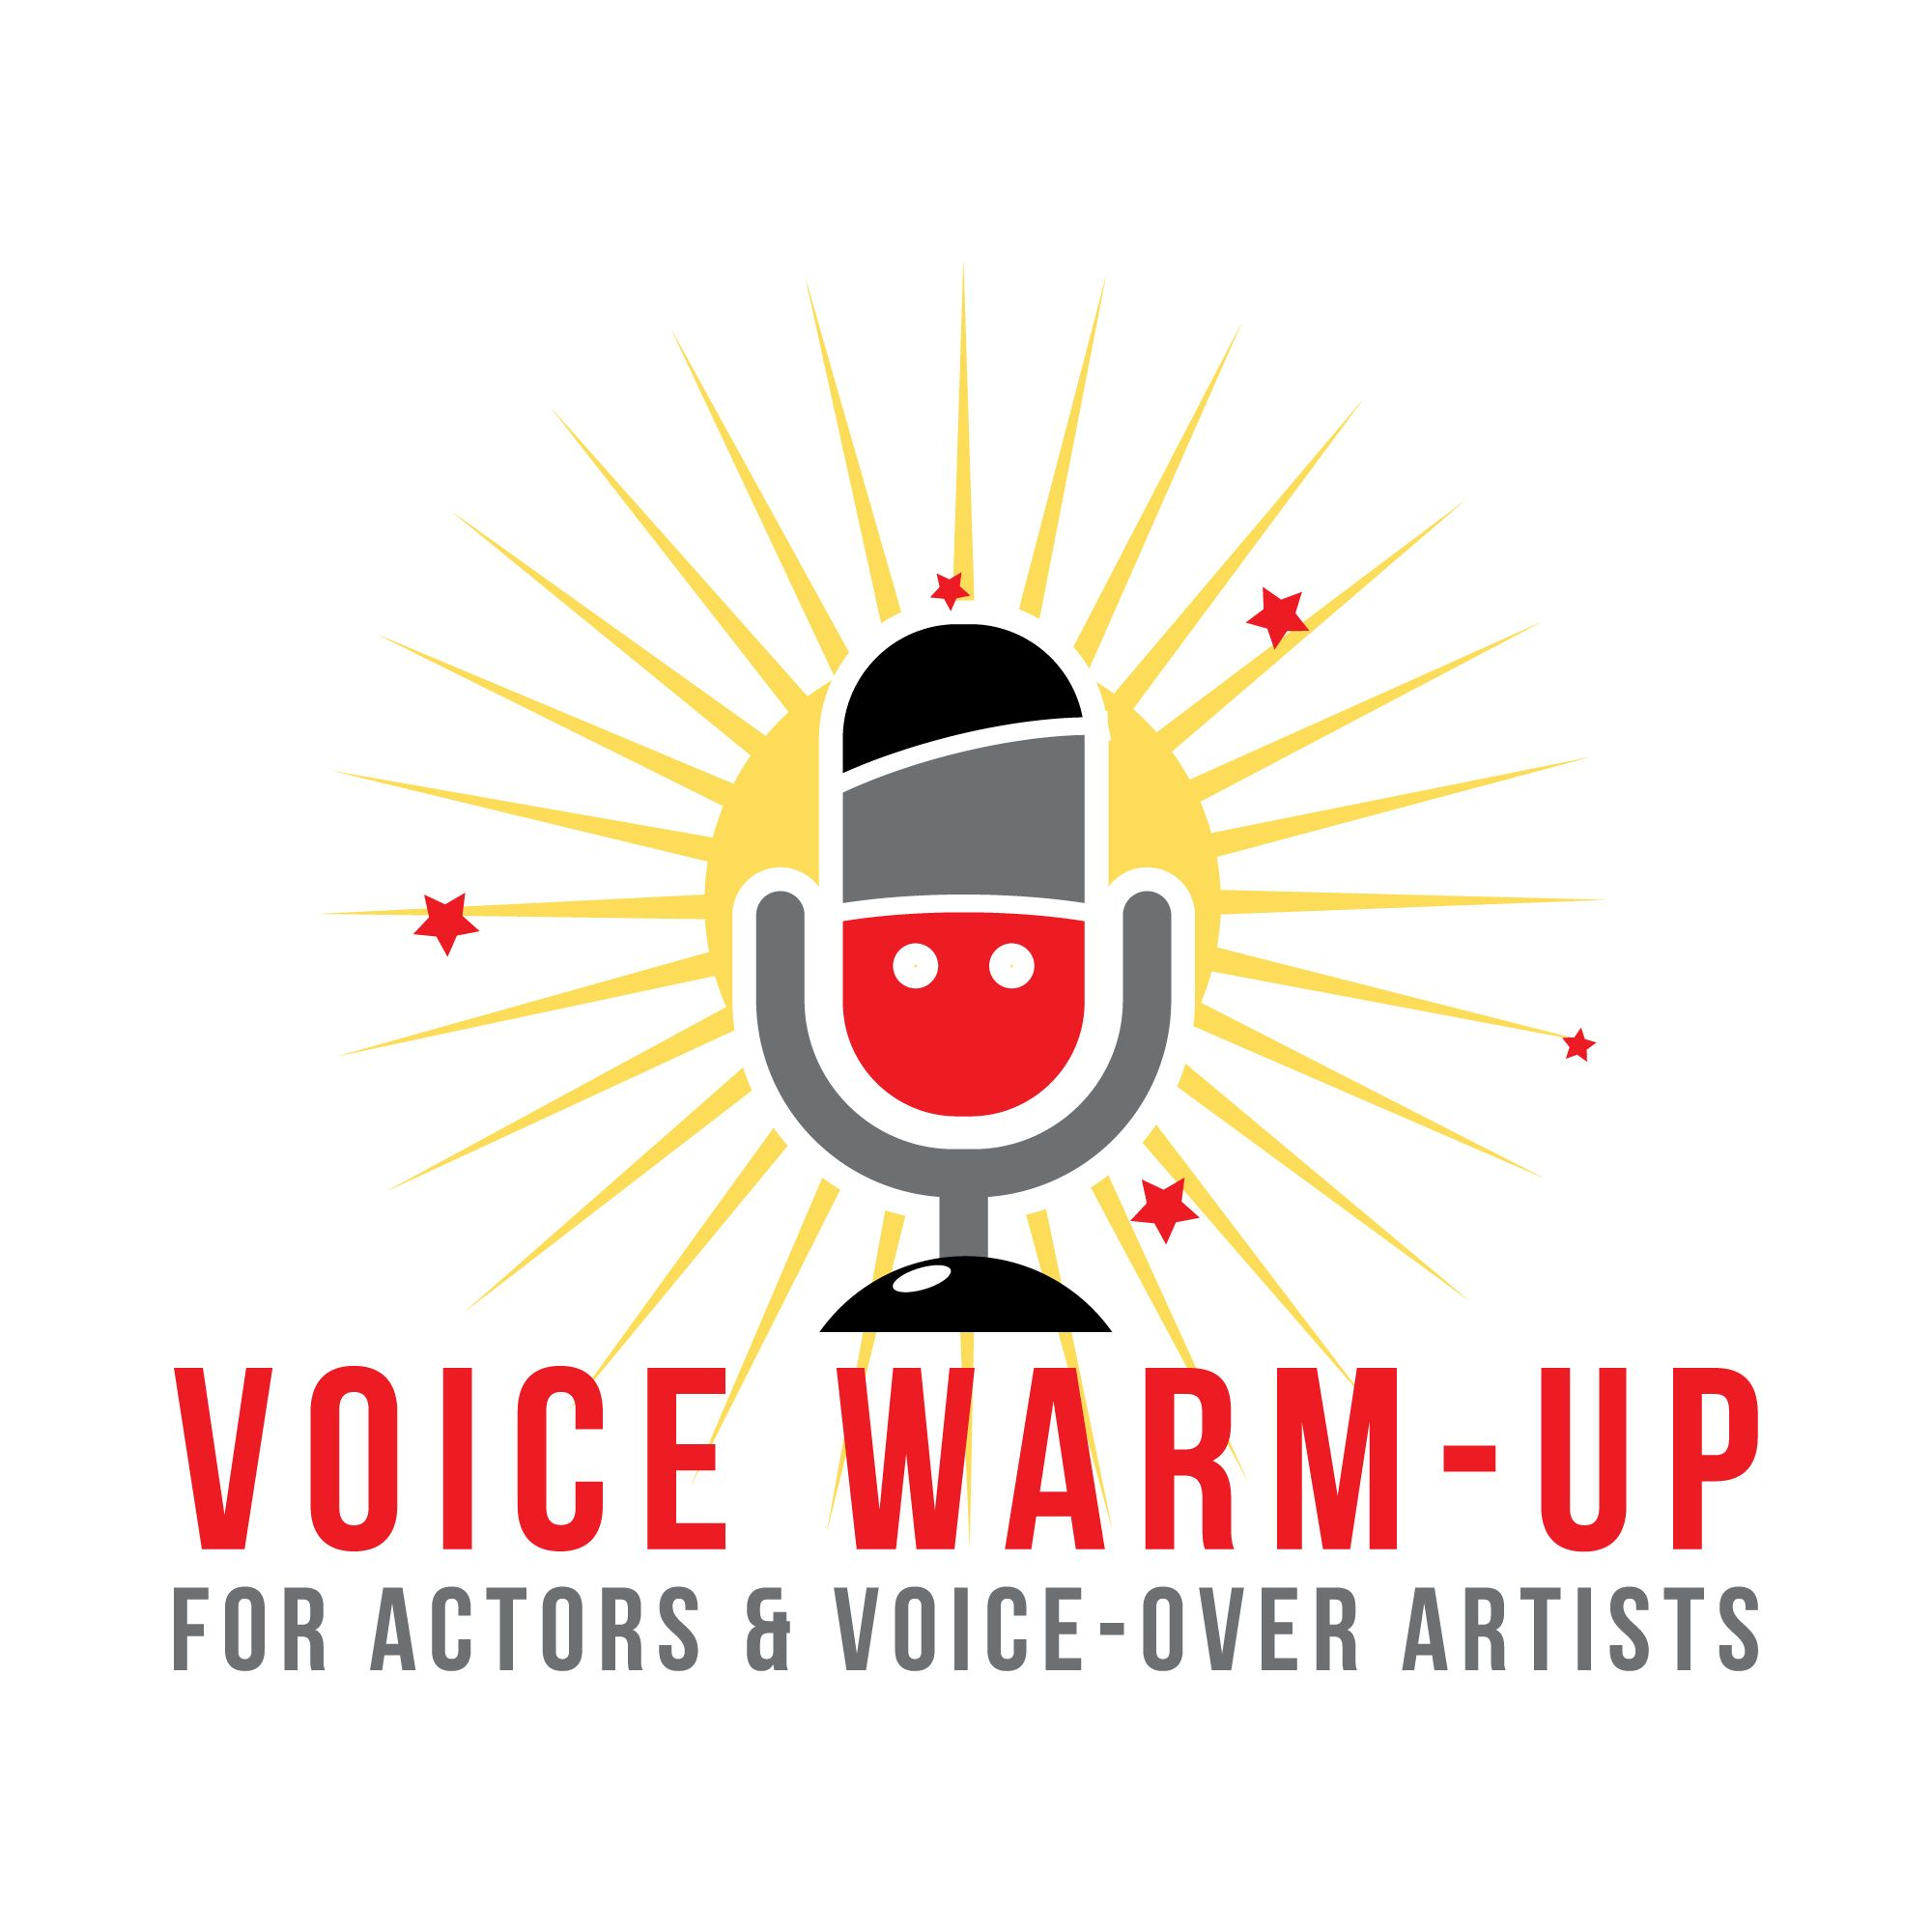 Pin on Vocal Warm Ups for Voice Actors